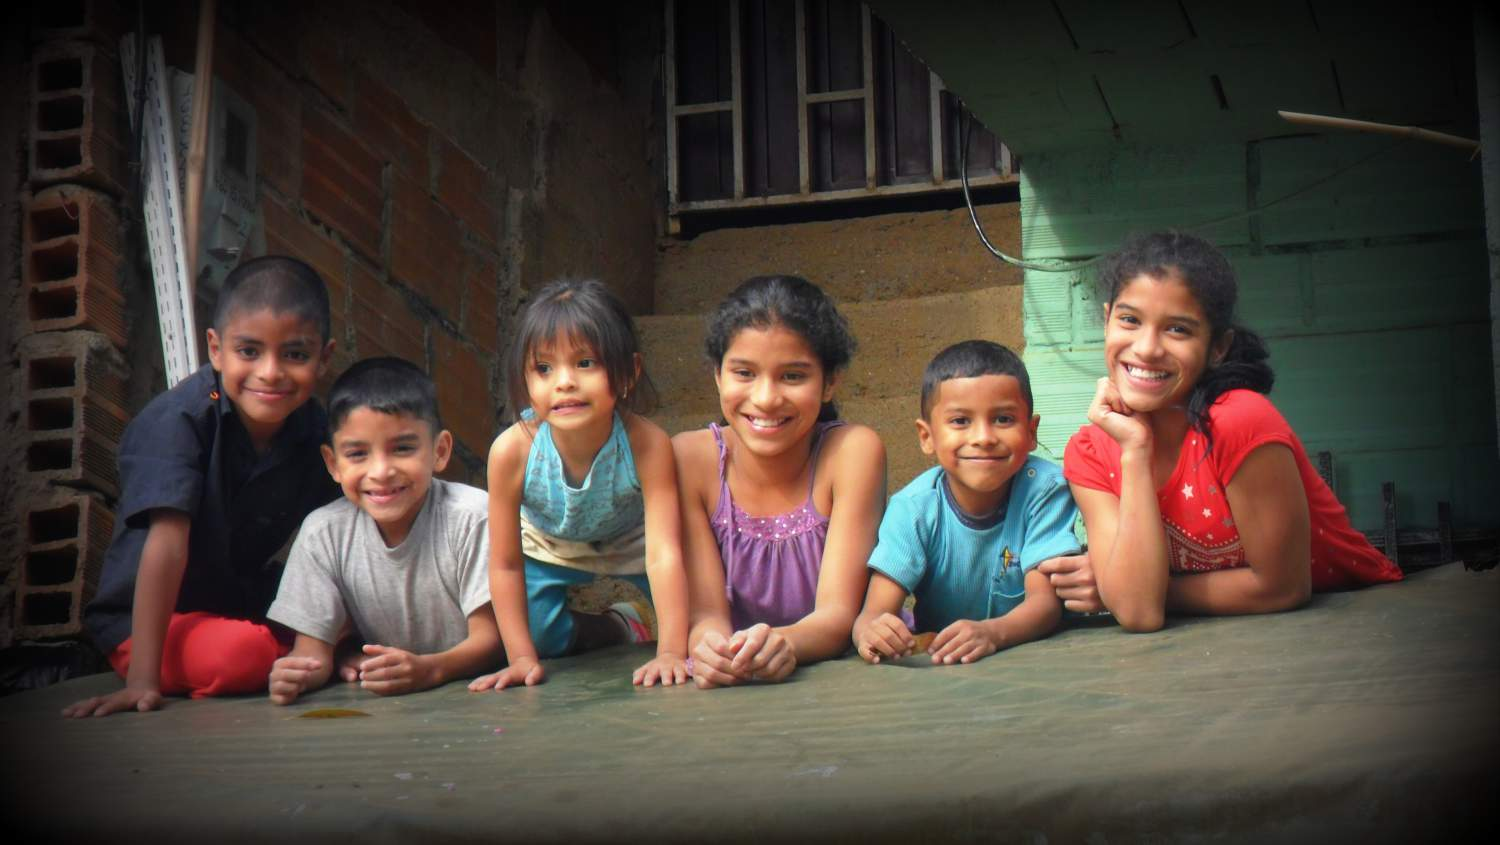 Kids smiling in Colombia